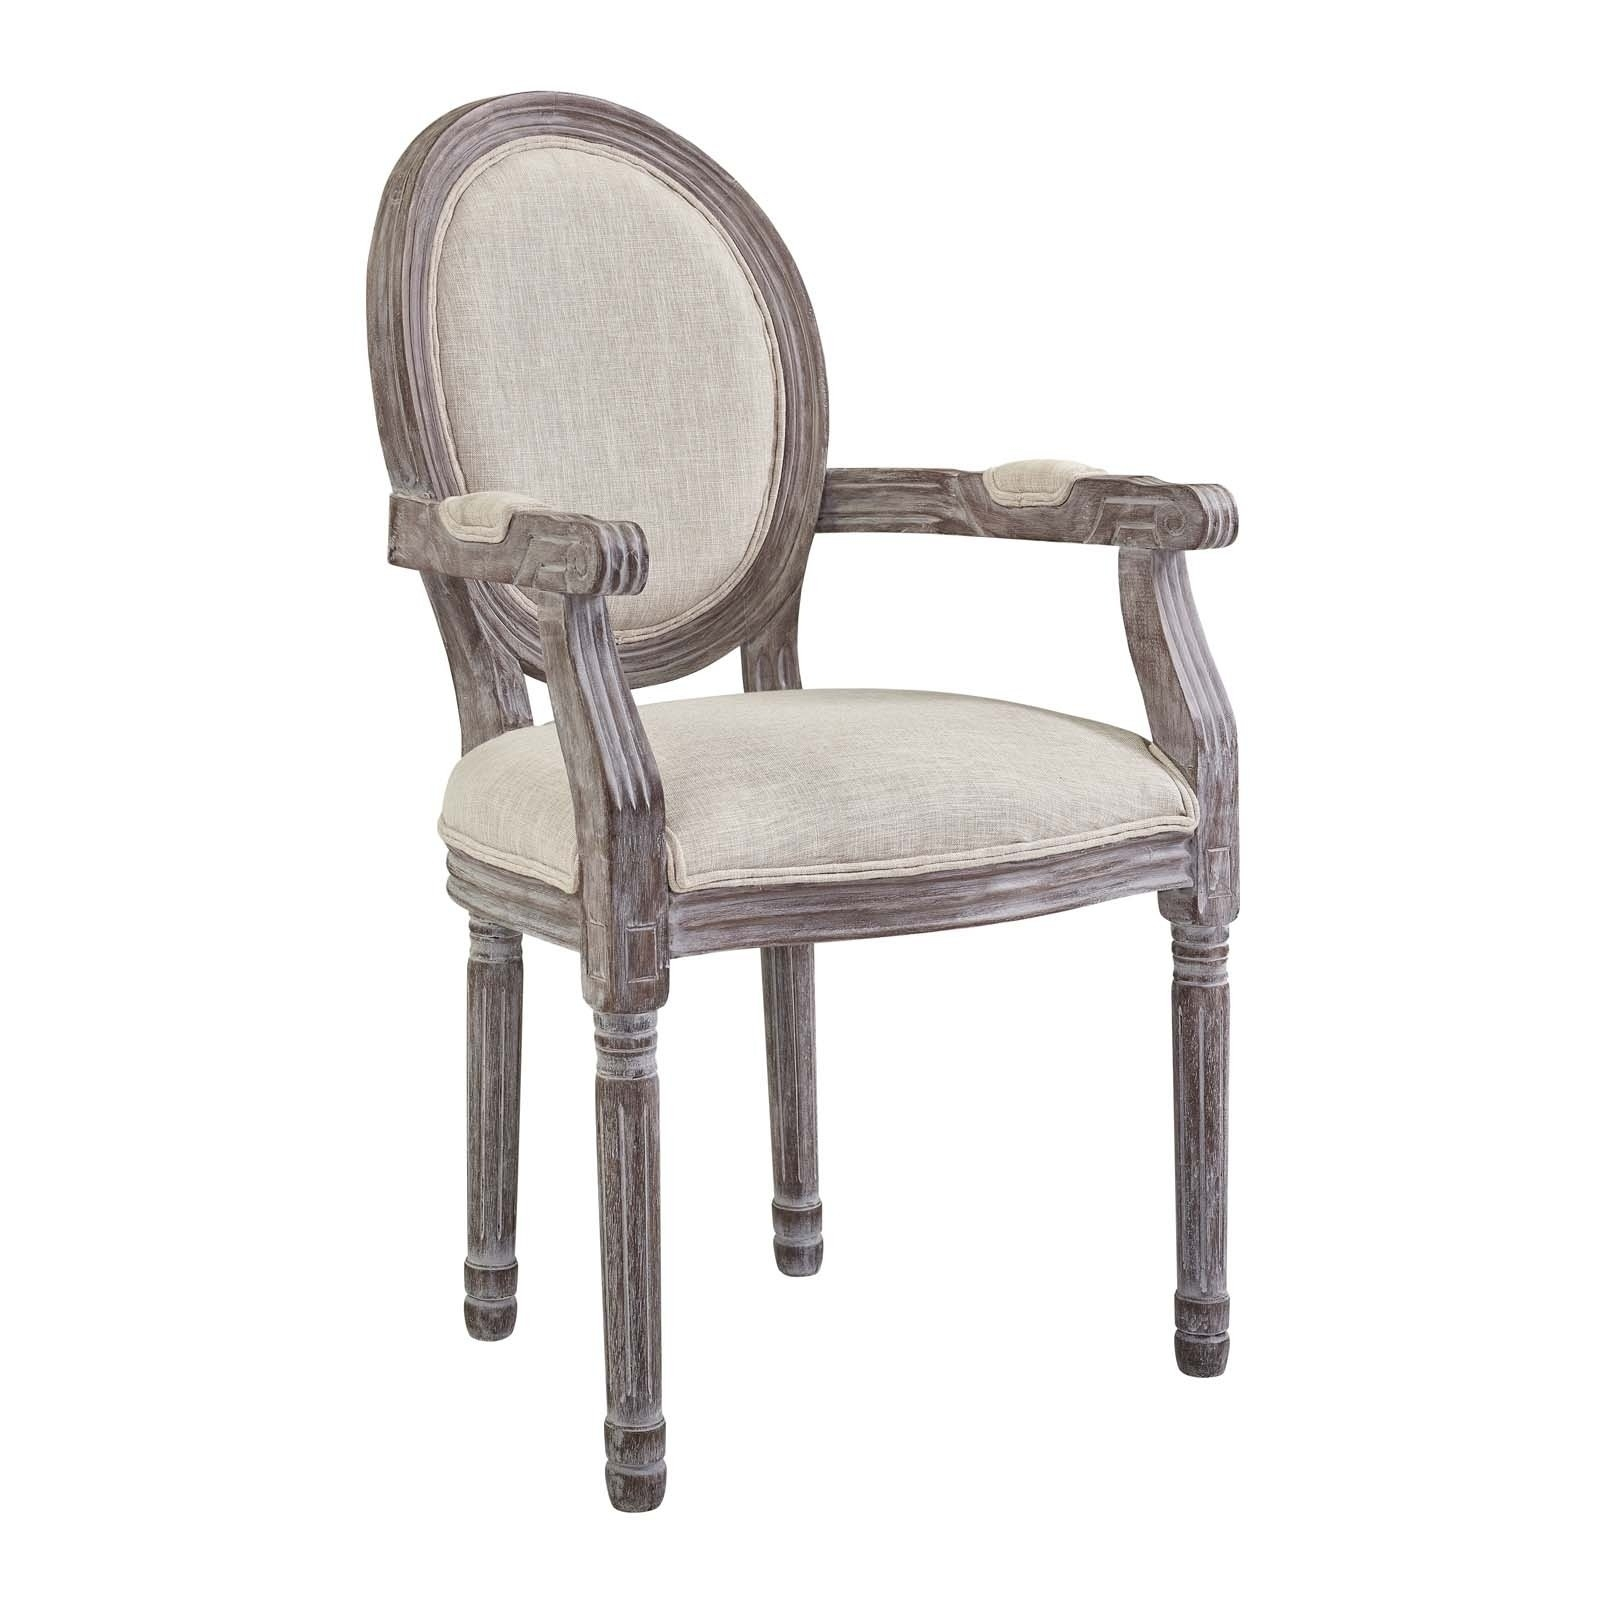 Shop Emanate Vintage French Upholstered Fabric Dining Armchair – N/a Throughout Most Current Caira Upholstered Arm Chairs (#12 of 20)